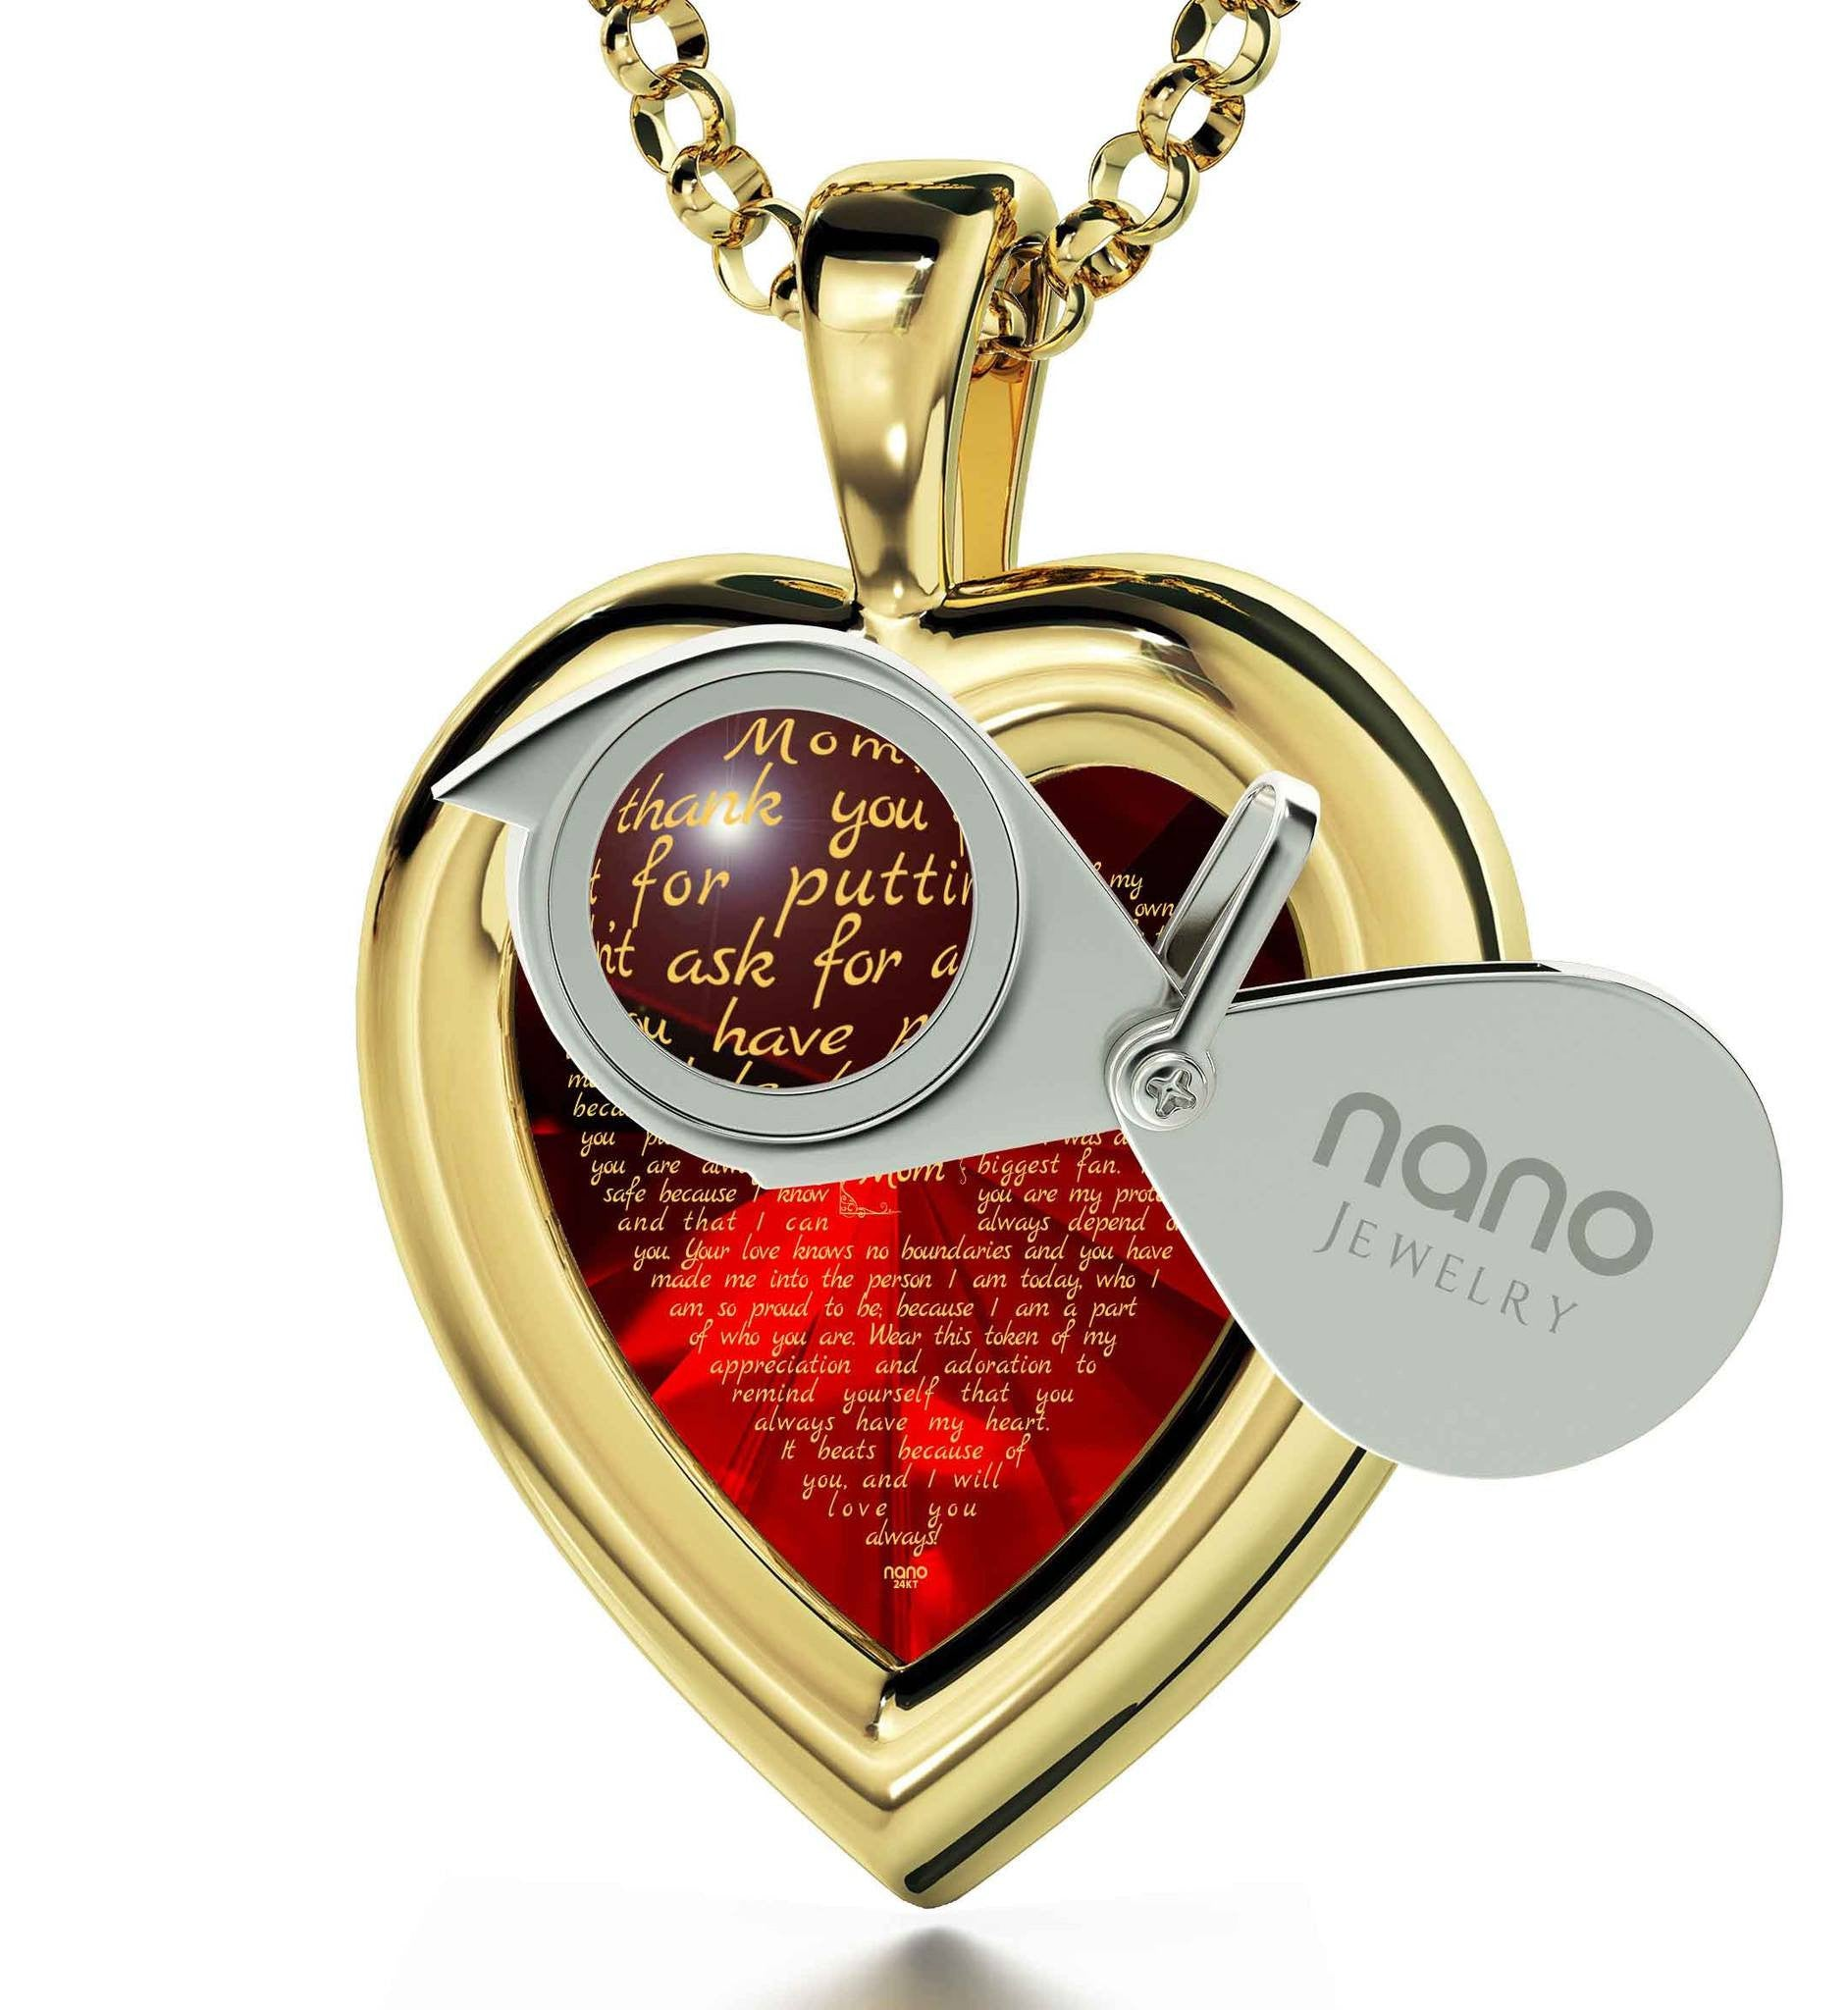 Presents for Mom's Birthday, 14 Karat Gold Necklace, CZ Red Heart, Christmas Gifts for Mothers